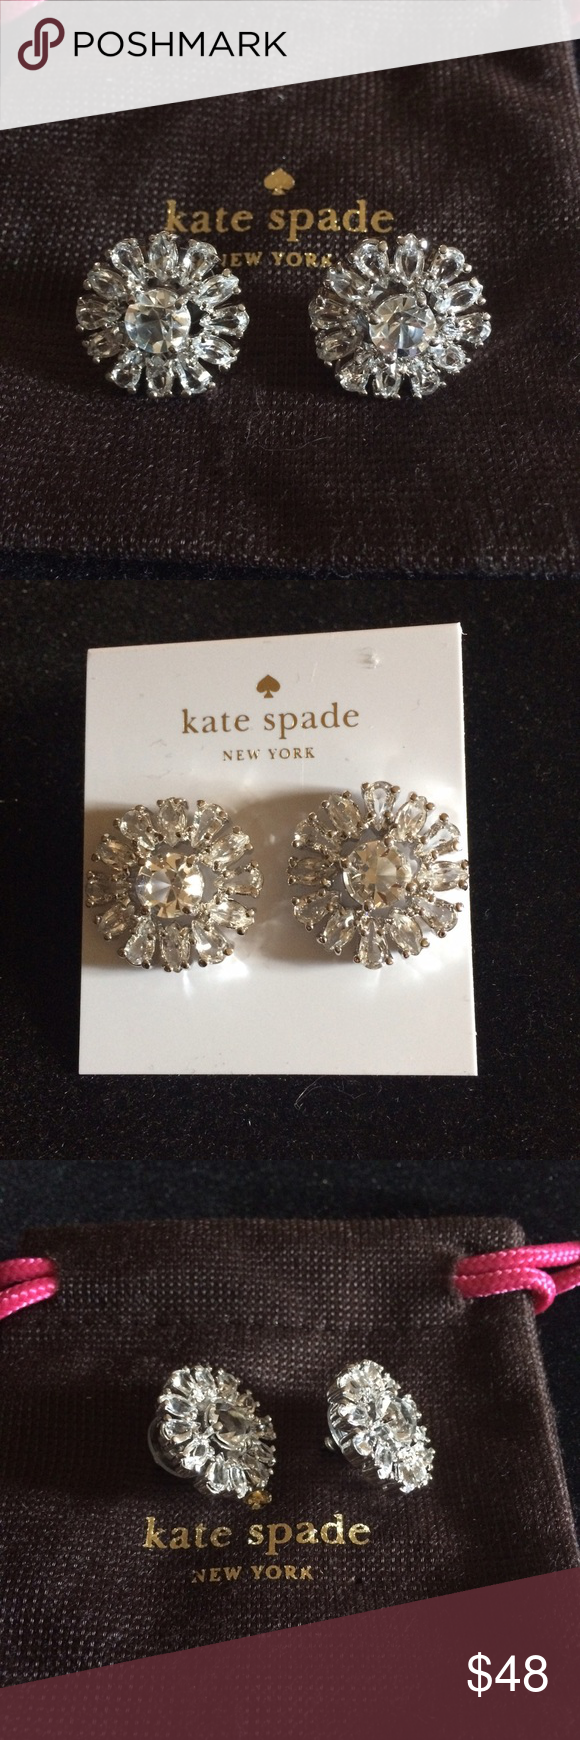 Kate Spade Rise To The Occasion Stud Earrings Crystal encrusted flower studs, 14k gold filled post. kate spade Jewelry Earrings